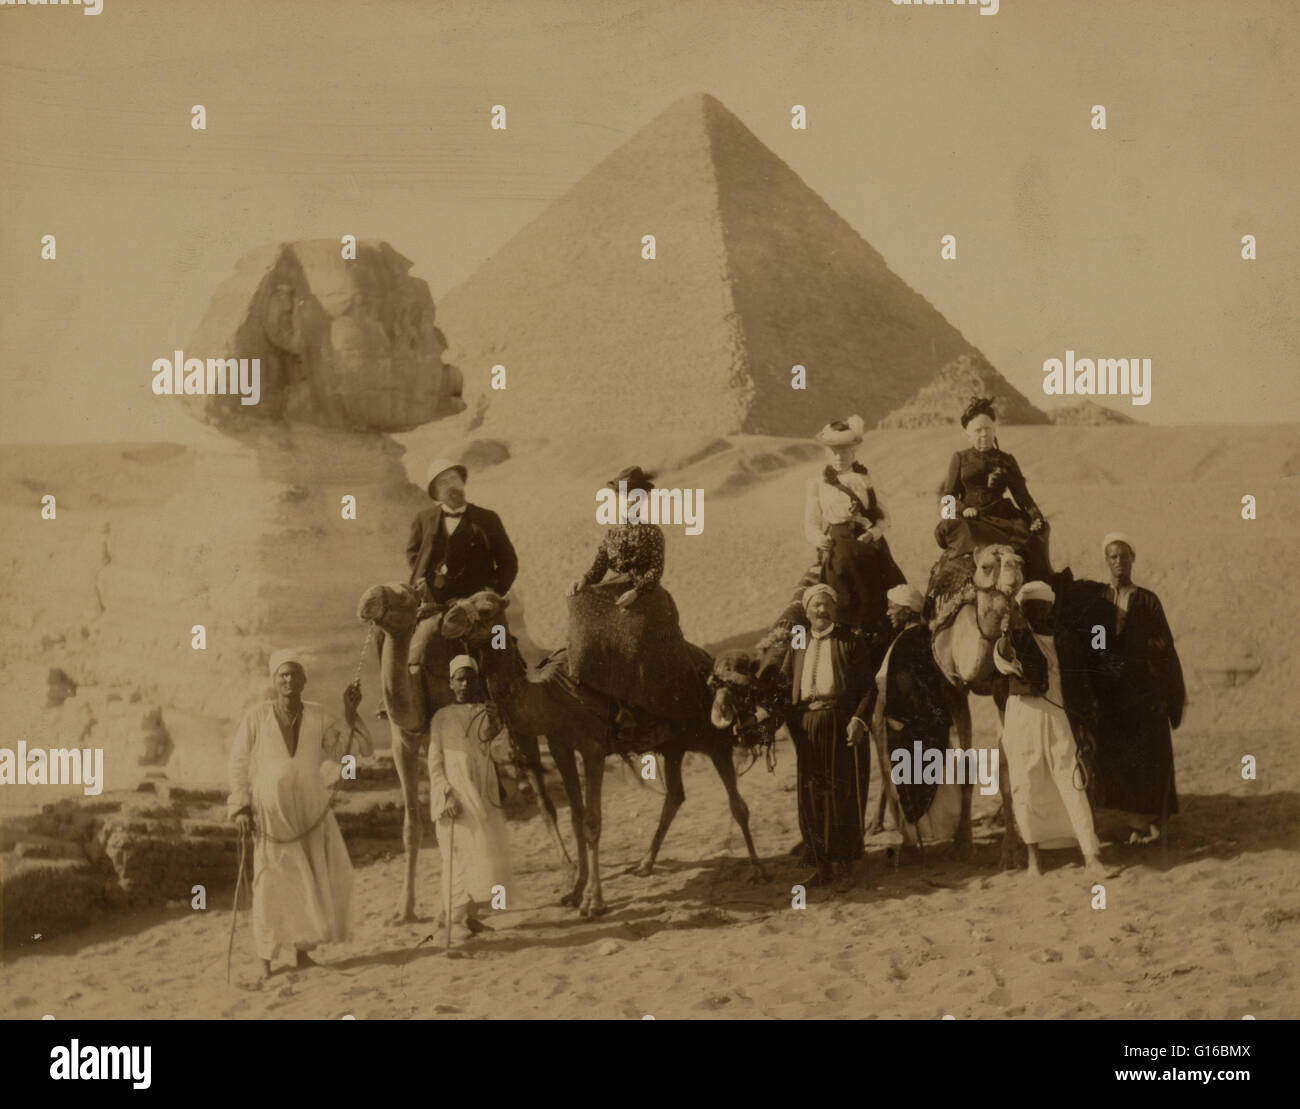 Entitled: 'Three women and a man in western attire, seated on camels, several local men stand before the camels - Stock Image